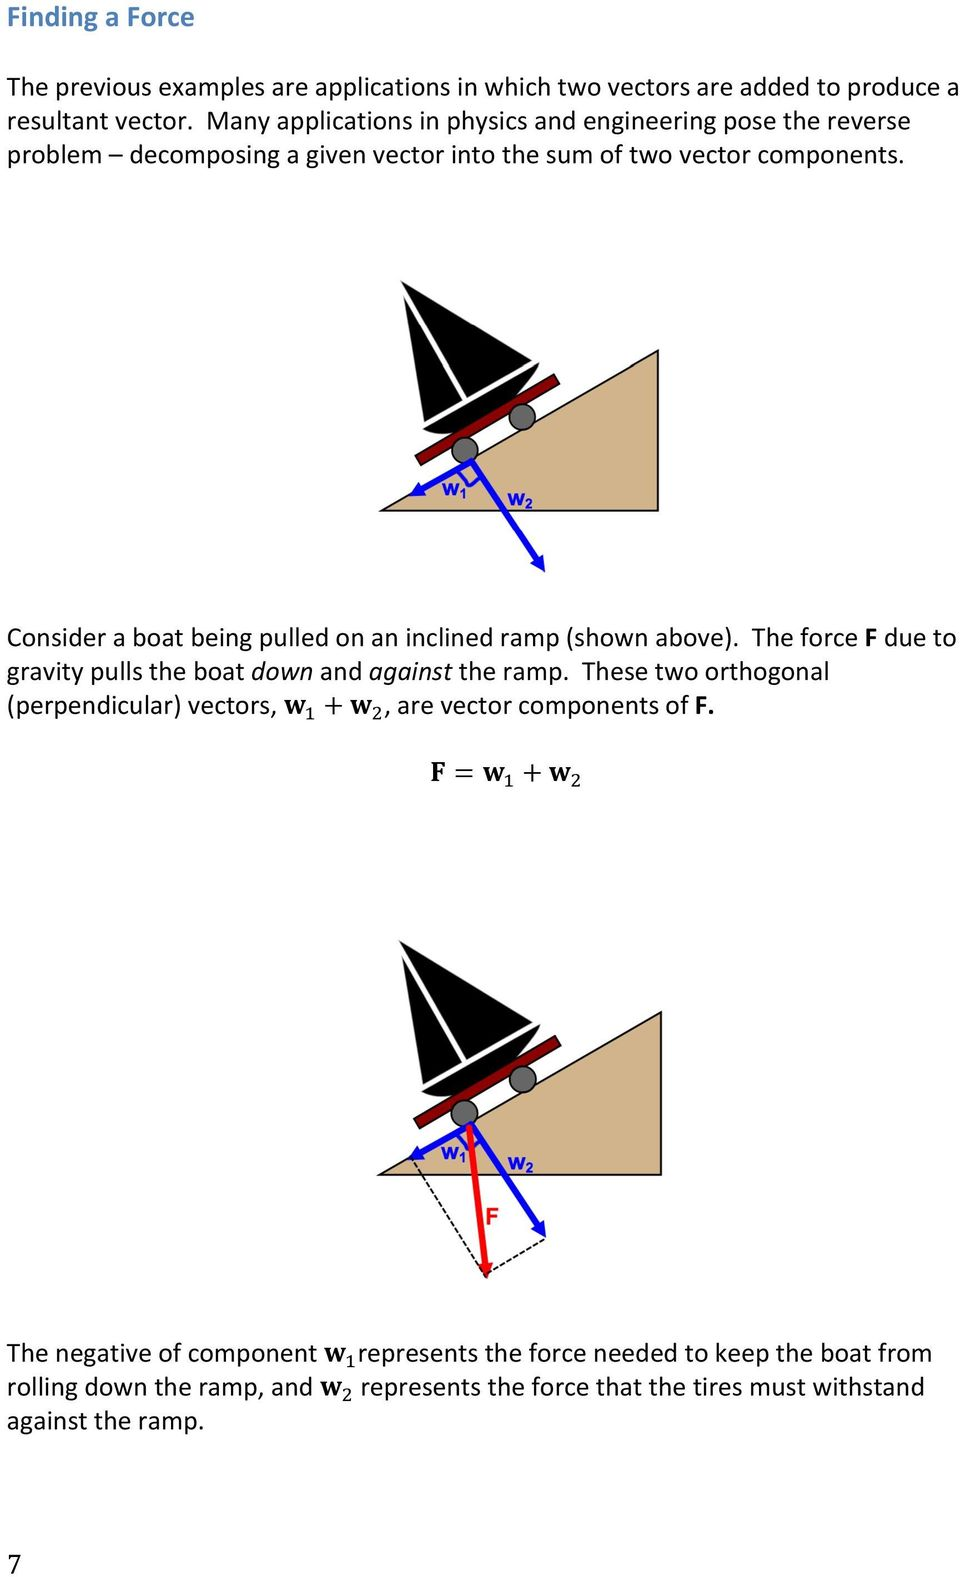 Consider a boat being pulled on an inclined ramp (shown above). The force F due to gravity pulls the boat down and against the ramp.